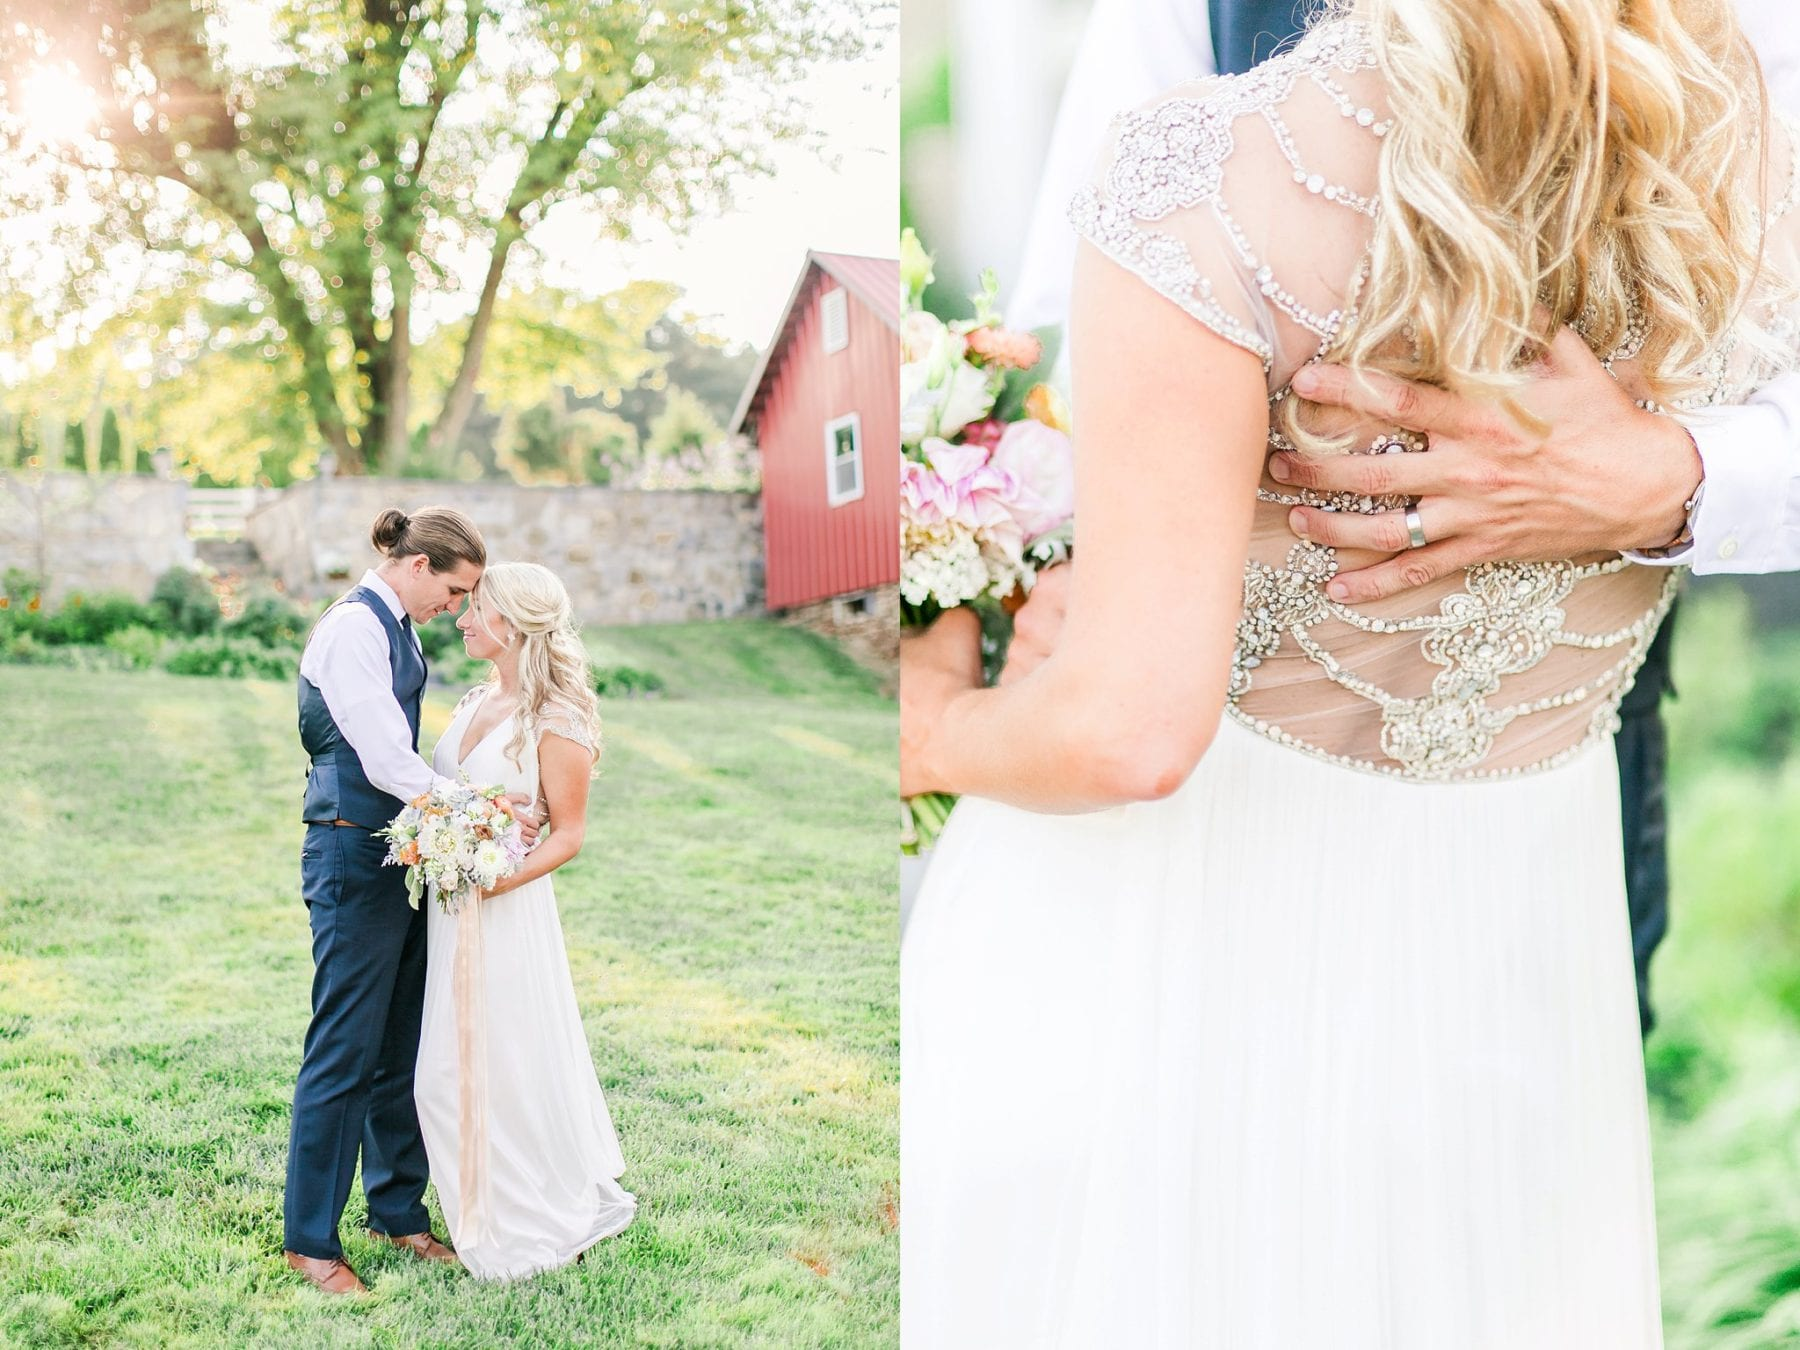 Pond View Farm Wedding Photos Maryland Wedding Photographer Kristen & Ryan Megan Kelsey Photography Blog-240.jpg